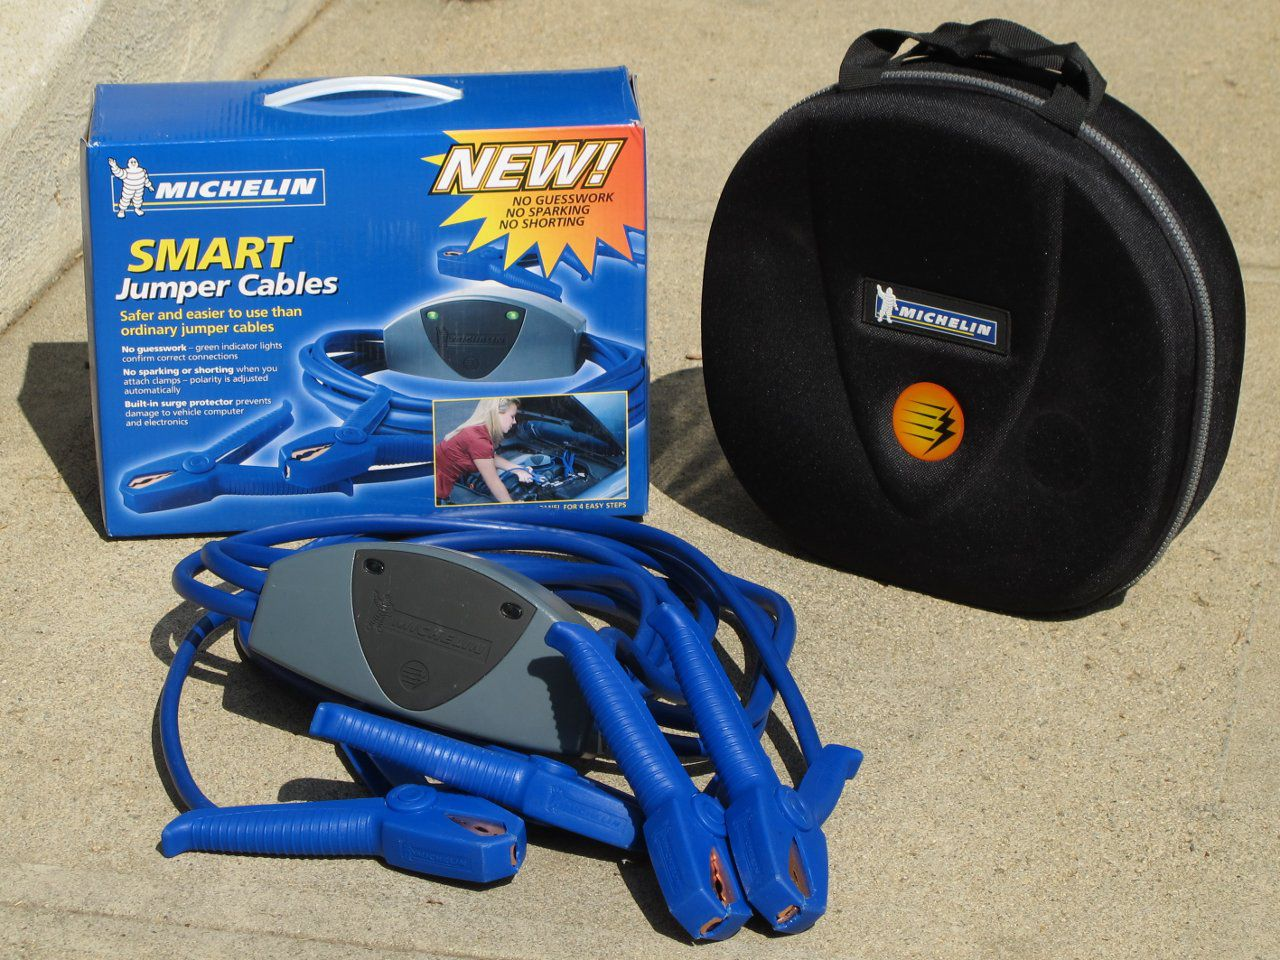 Michelin Smart Cables Jumper Cables Review